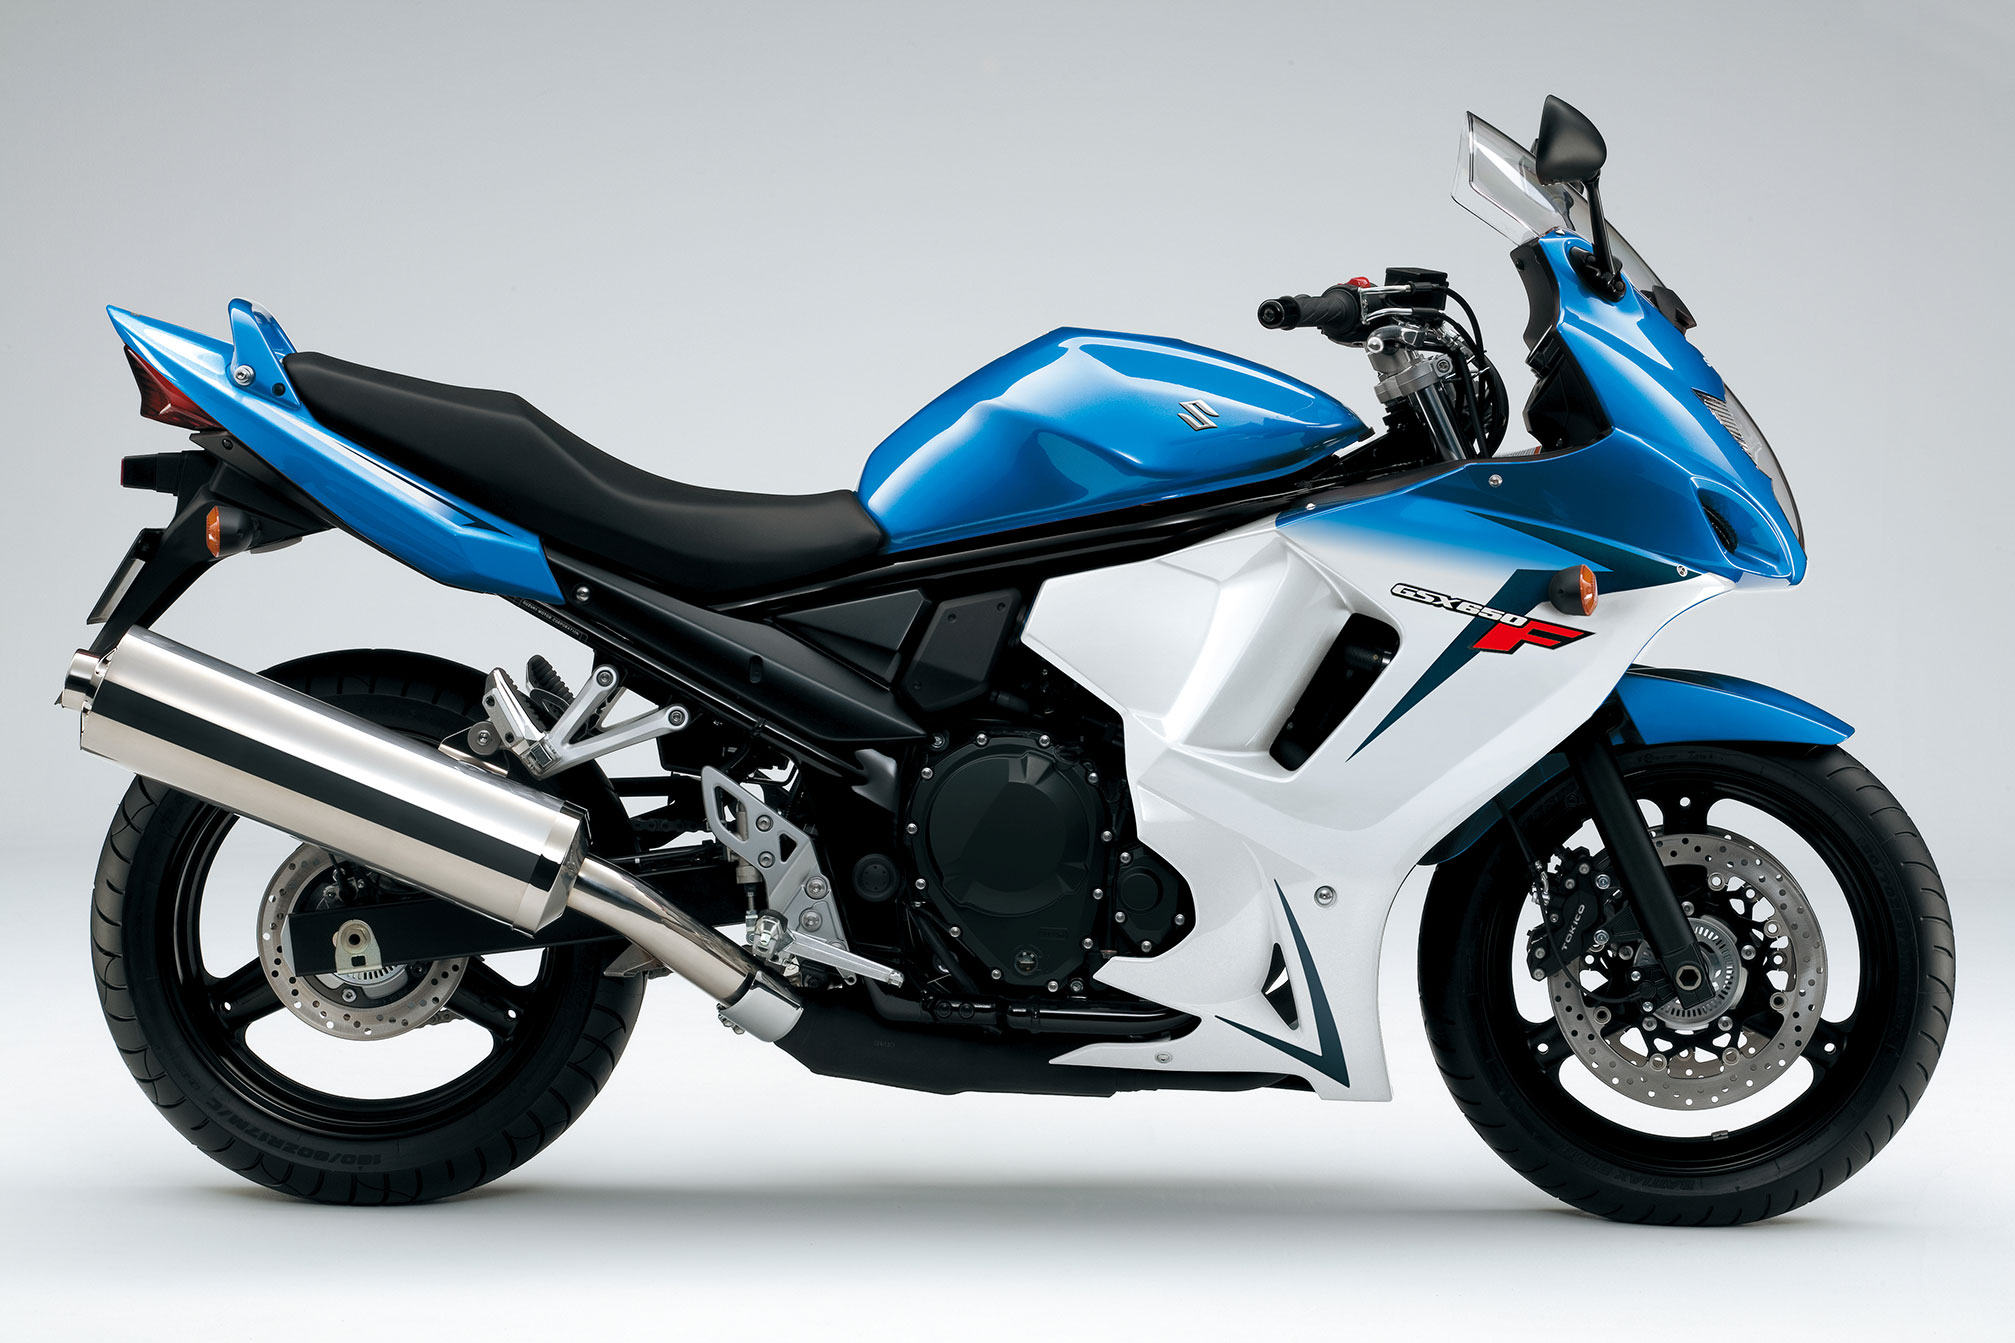 2013 suzuki gsx 650 f pics specs and information. Black Bedroom Furniture Sets. Home Design Ideas